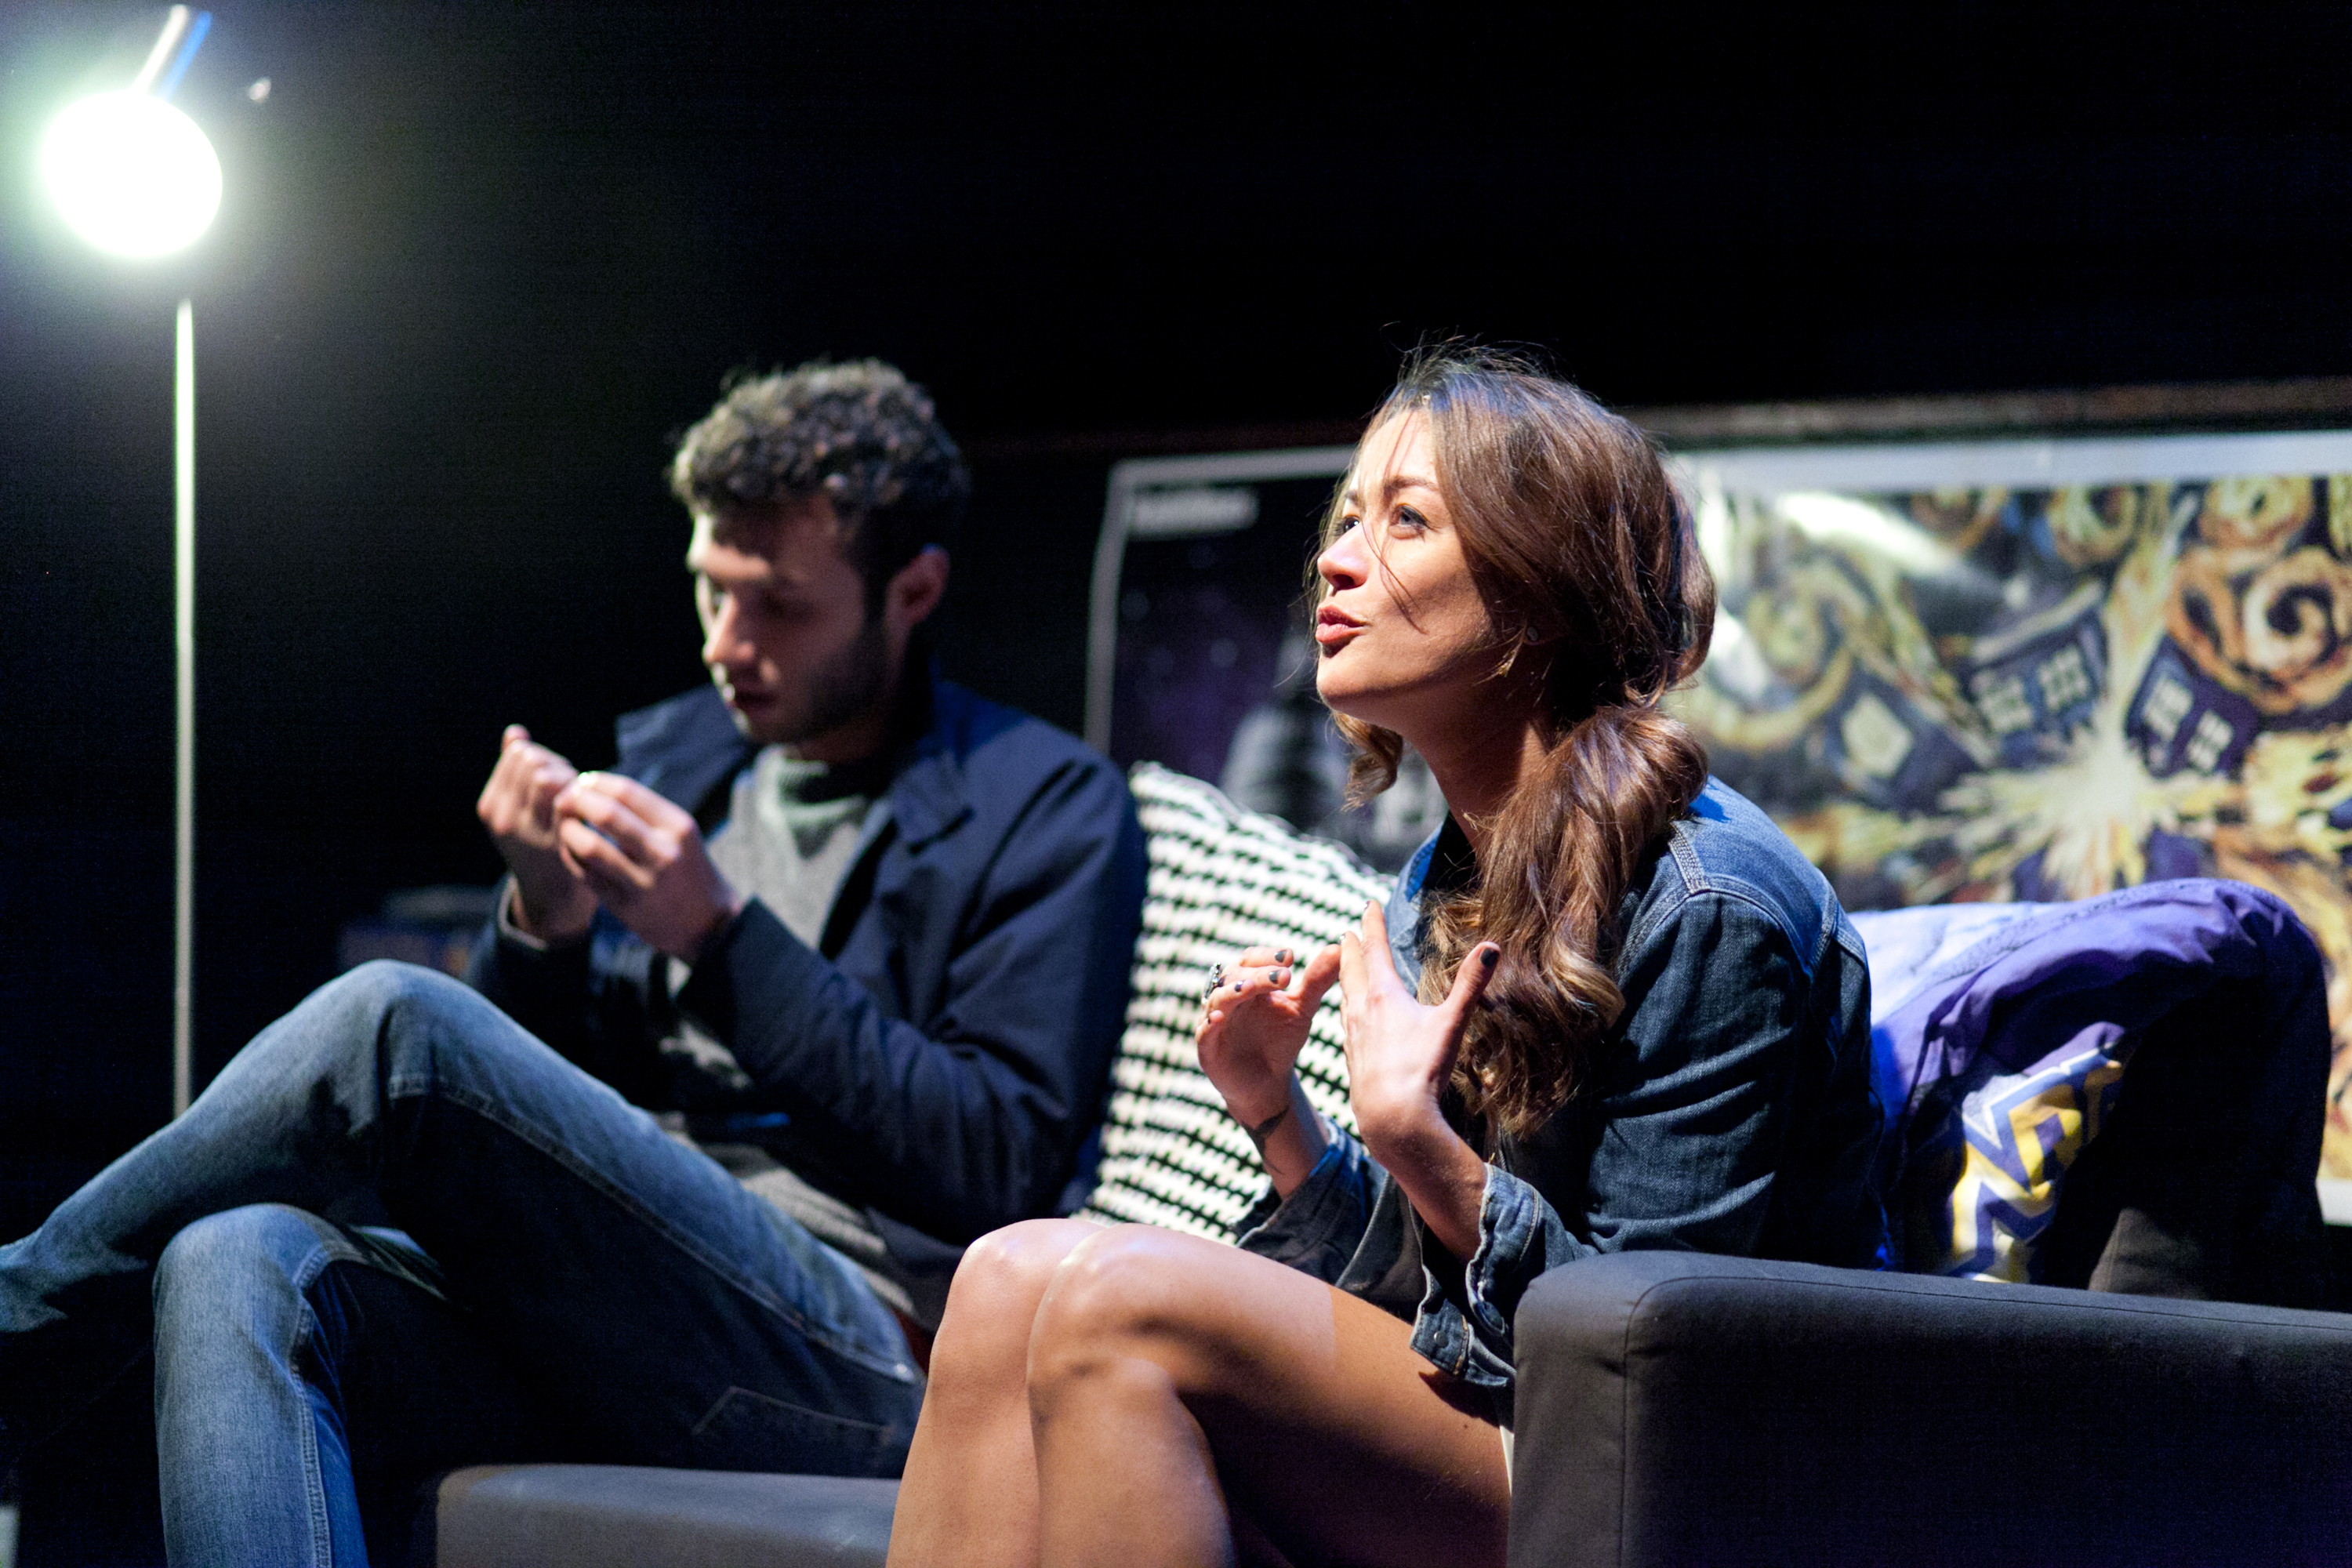 AnotherWay9Julie Atherton (Carrie) Andy Coxon (Oliver)PhotosDarren Bell